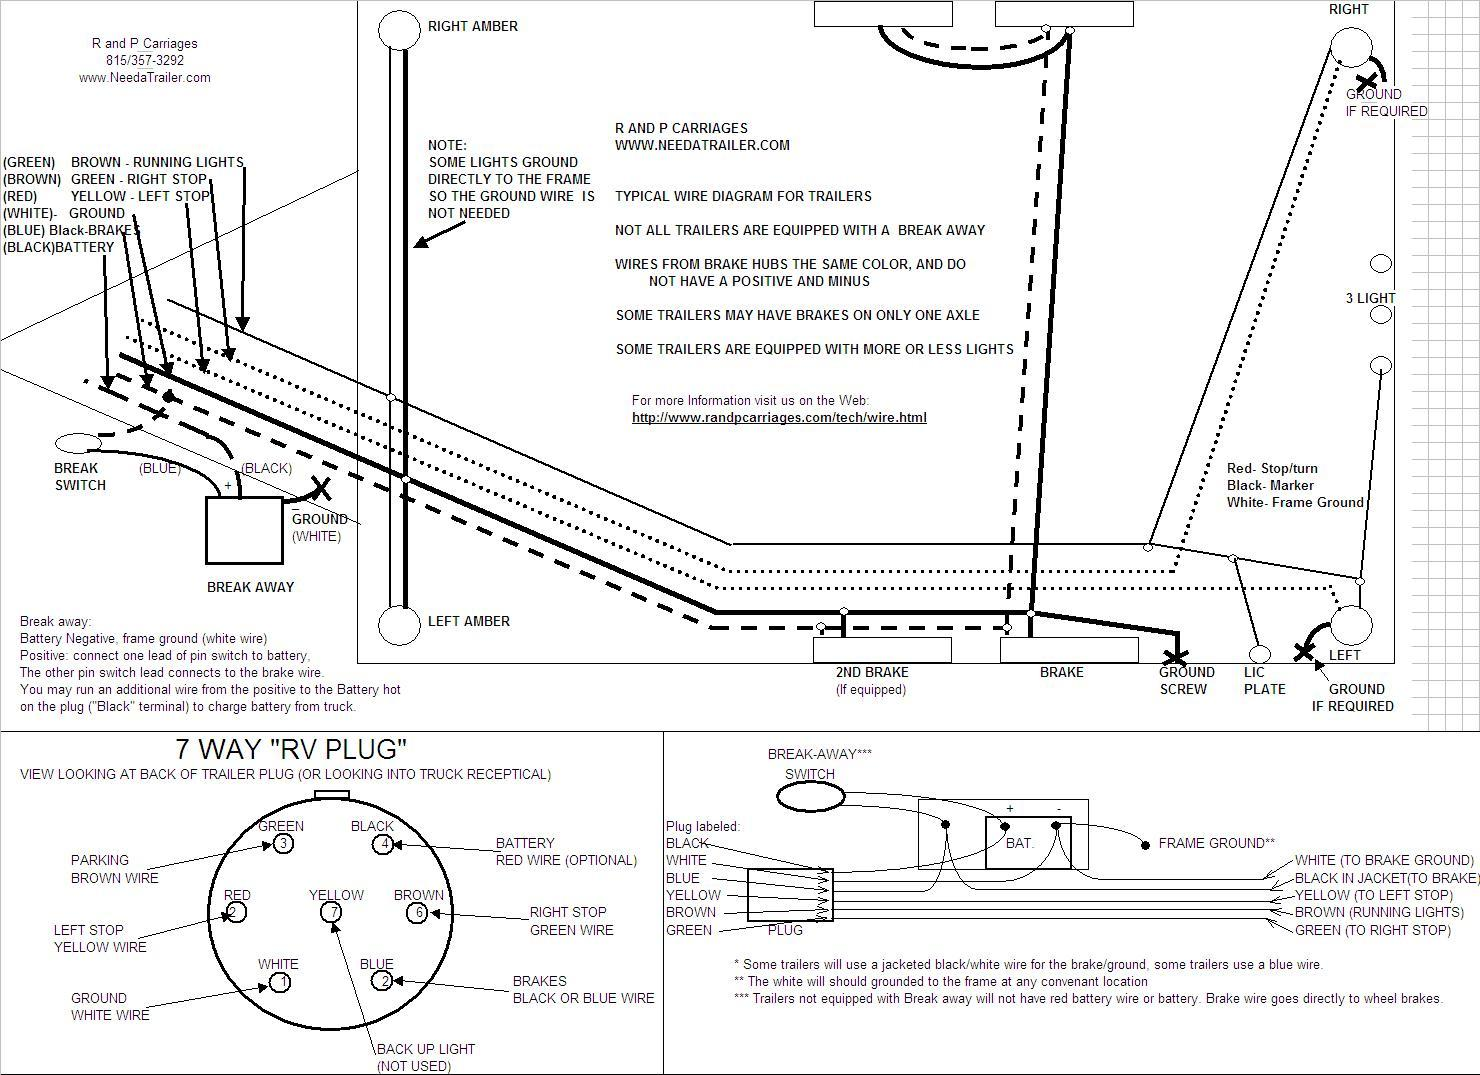 7 way wiring diagram brake controller installation instructions 4 way plug wiring diagram at creativeand.co